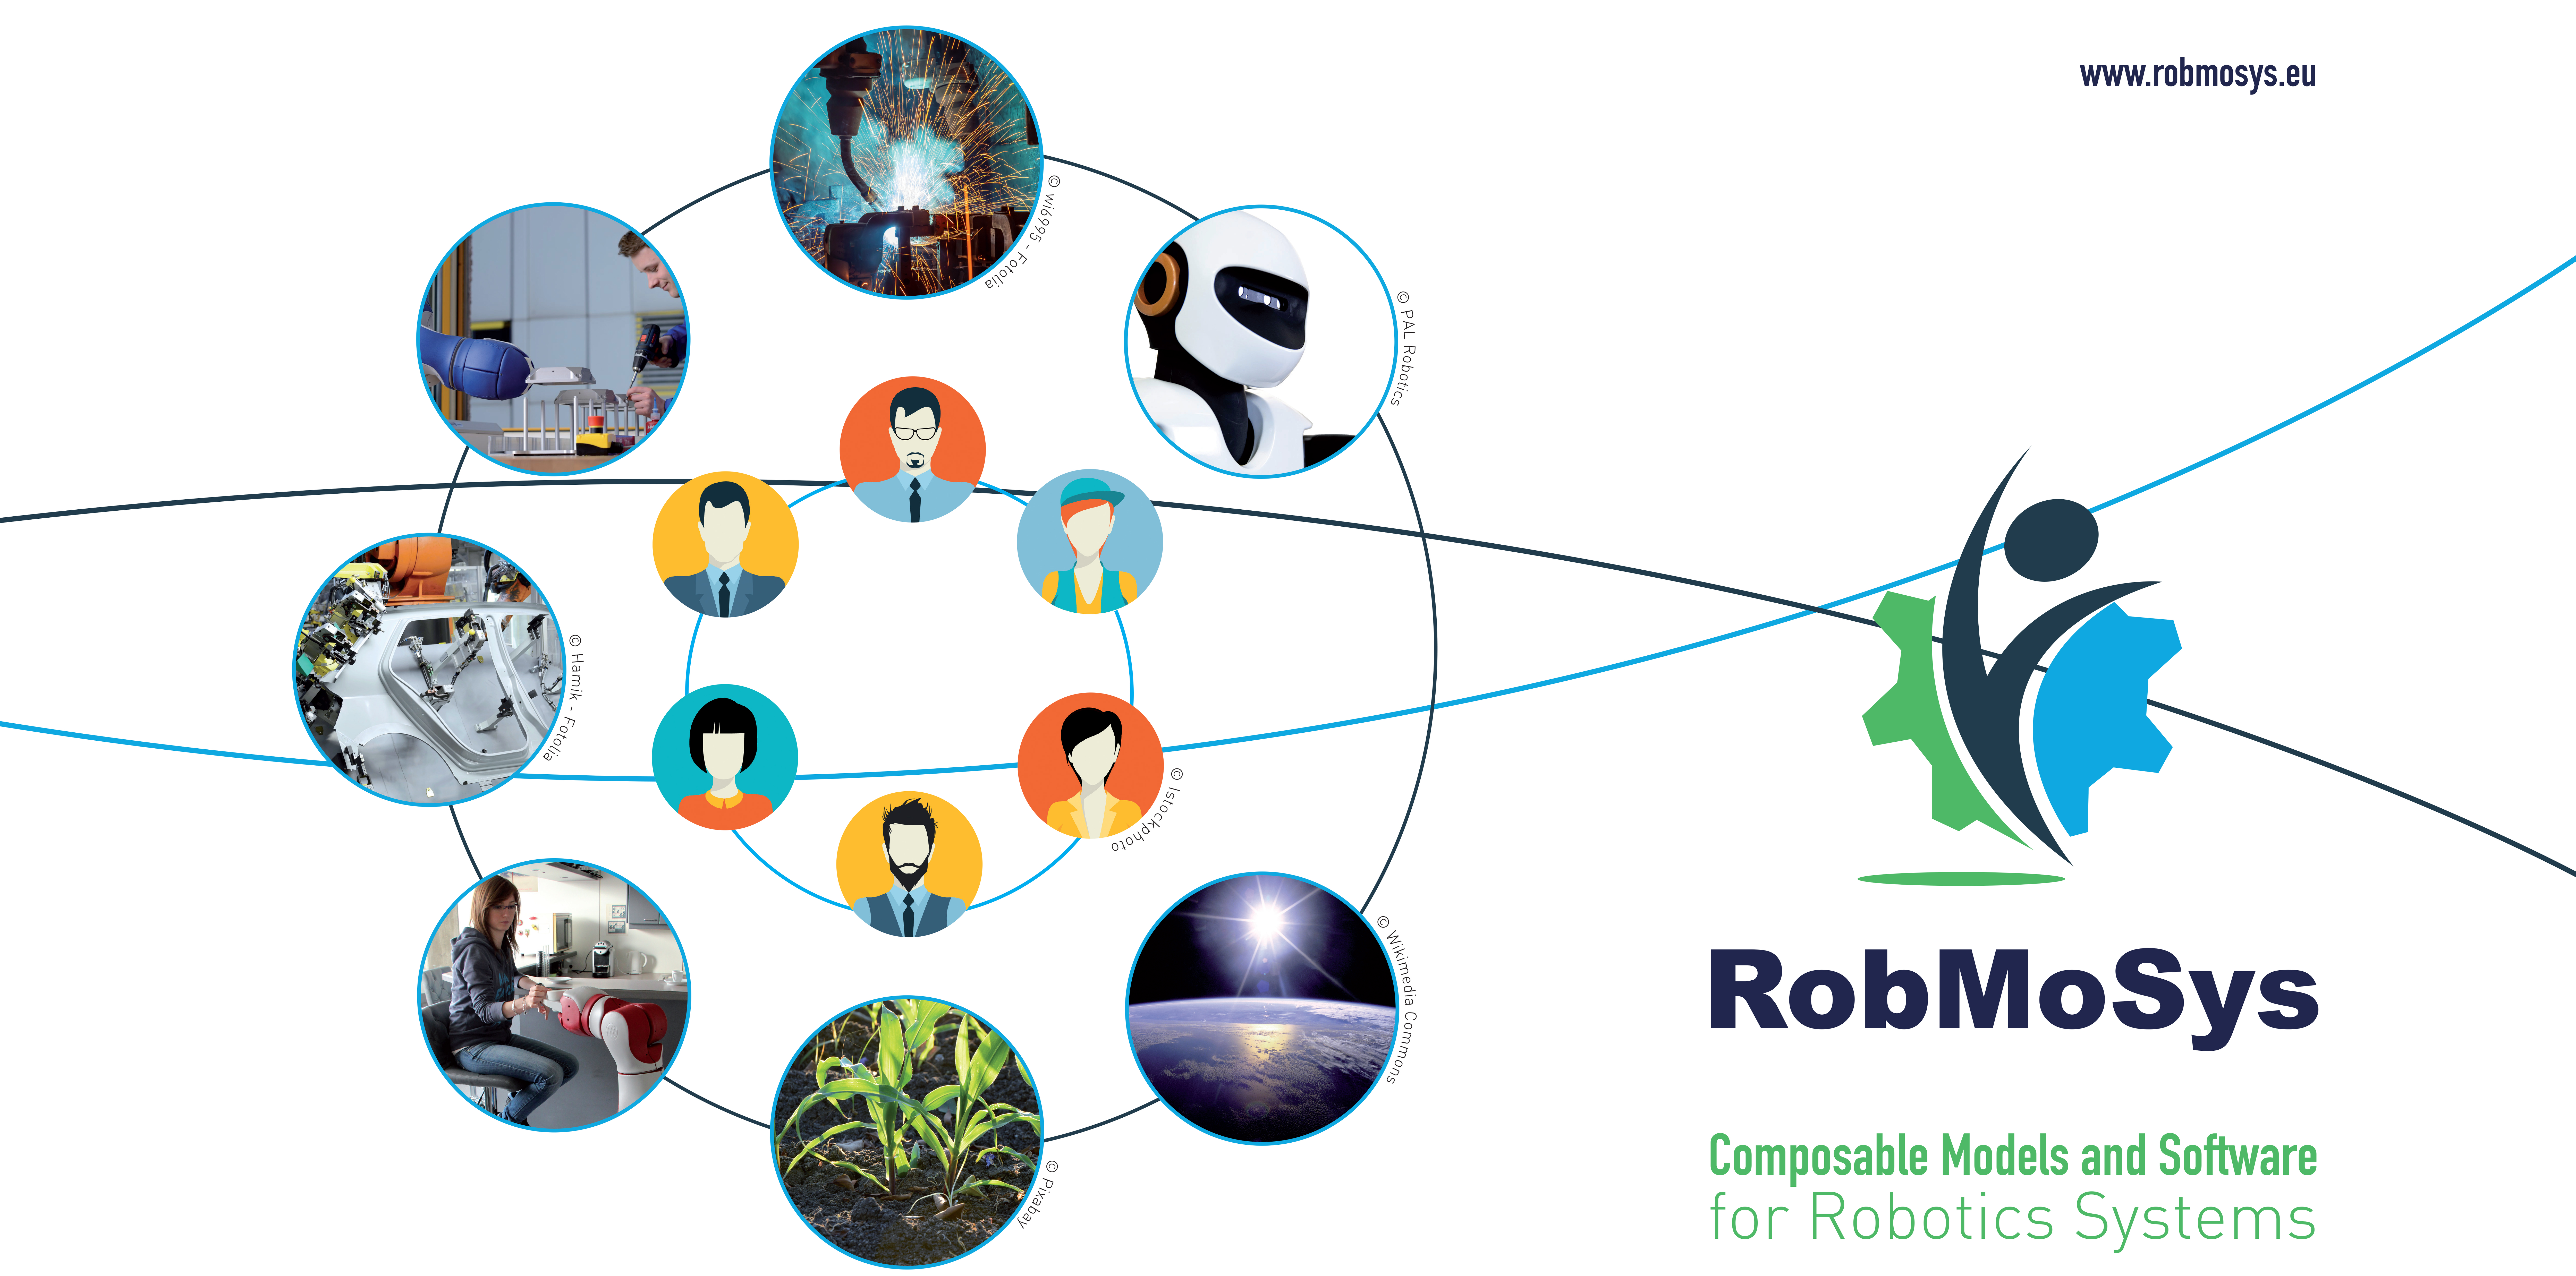 RobMoSys & ROSIN: towards an EU Digital Industrial Platform